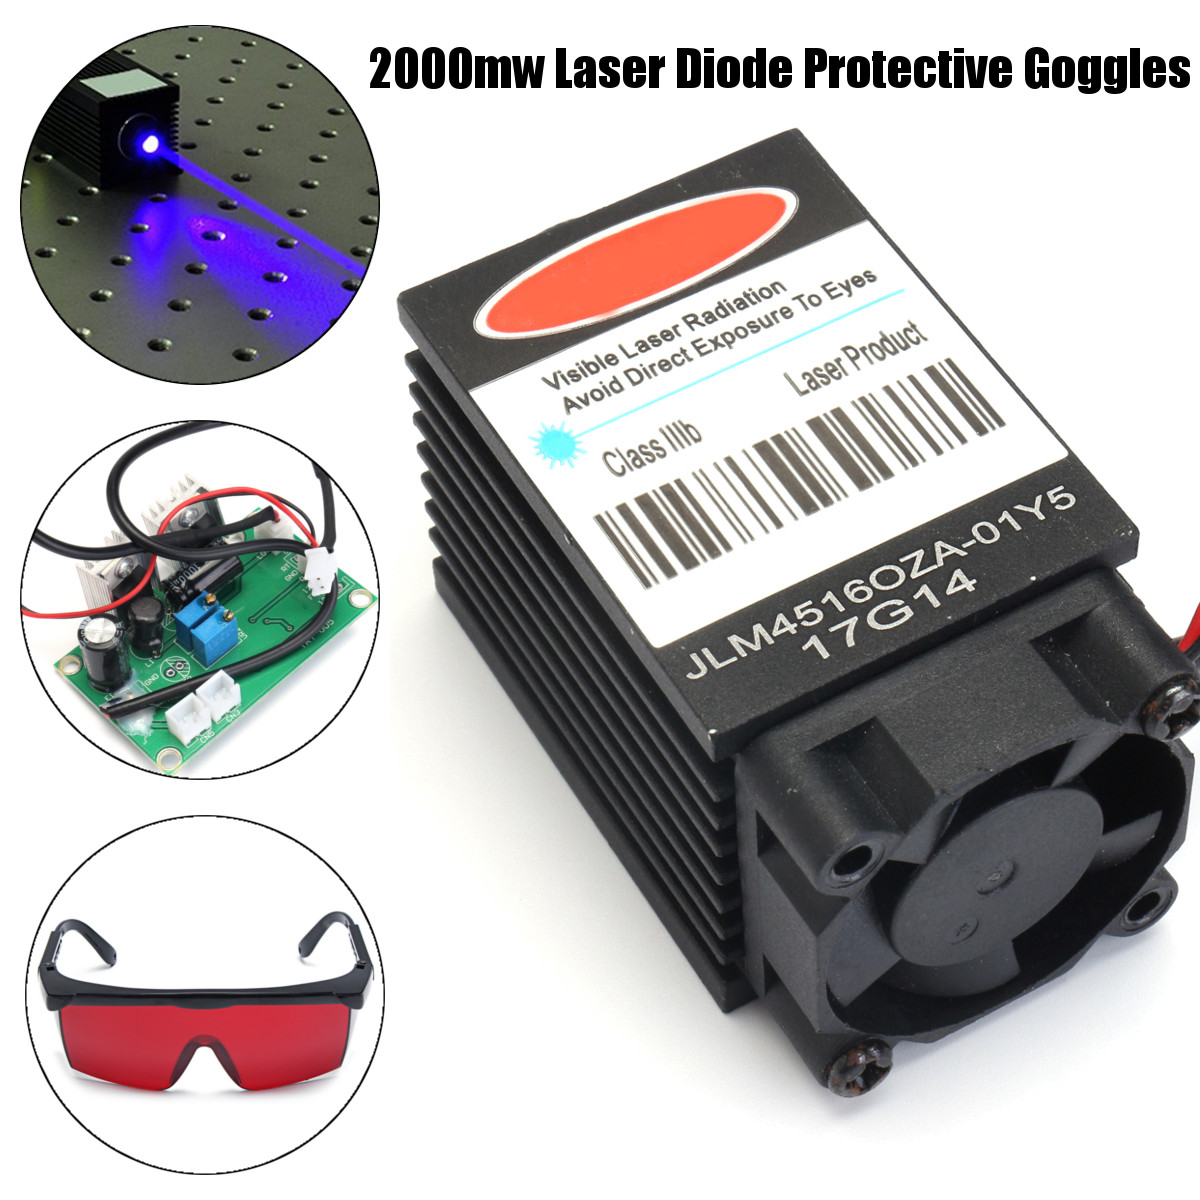 2W High Power 445NM Focusing Blue Laser Module Laser Engraving And Cutting TTL Module 2000mw Laser Tube+ 405NM Goggles